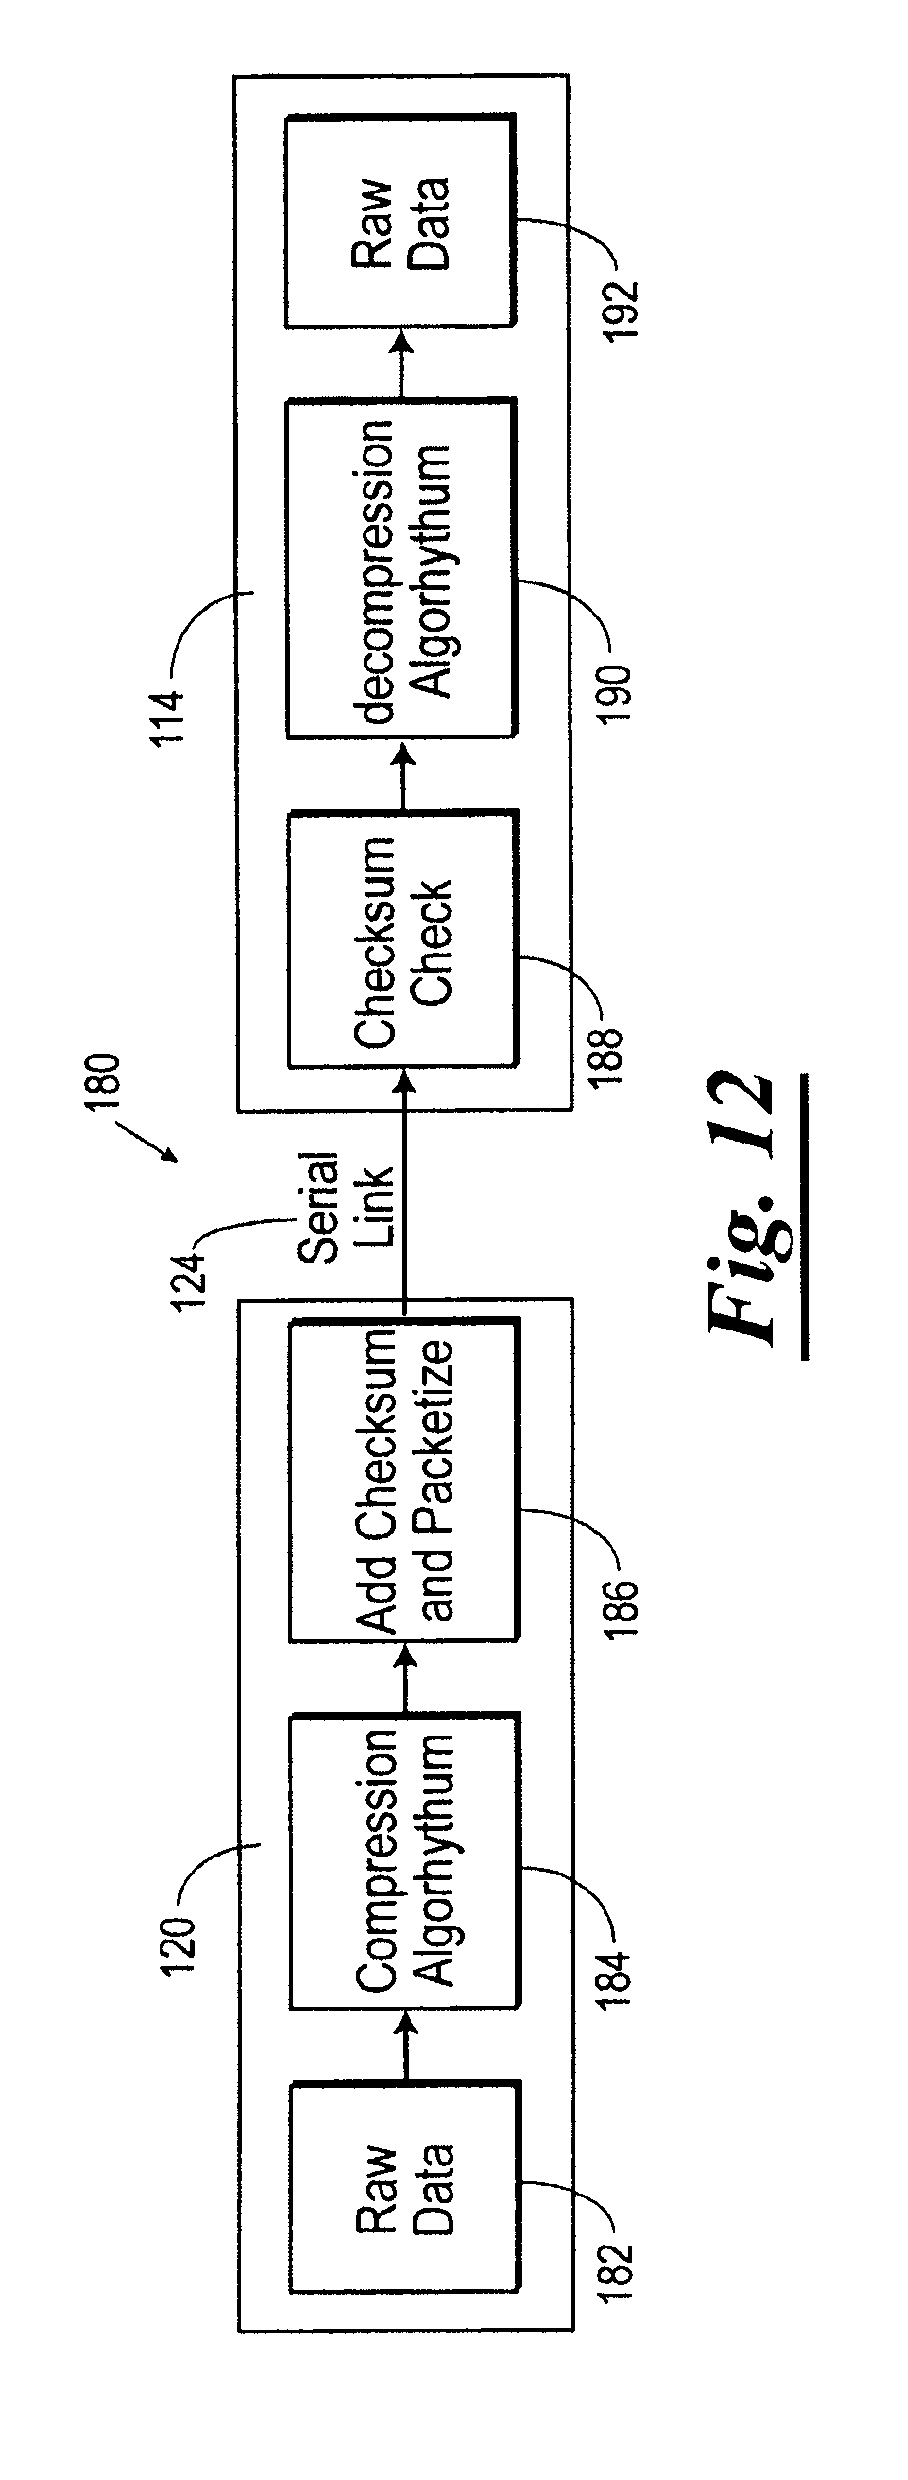 patent us7668666 method and device for securely storing data patent drawing